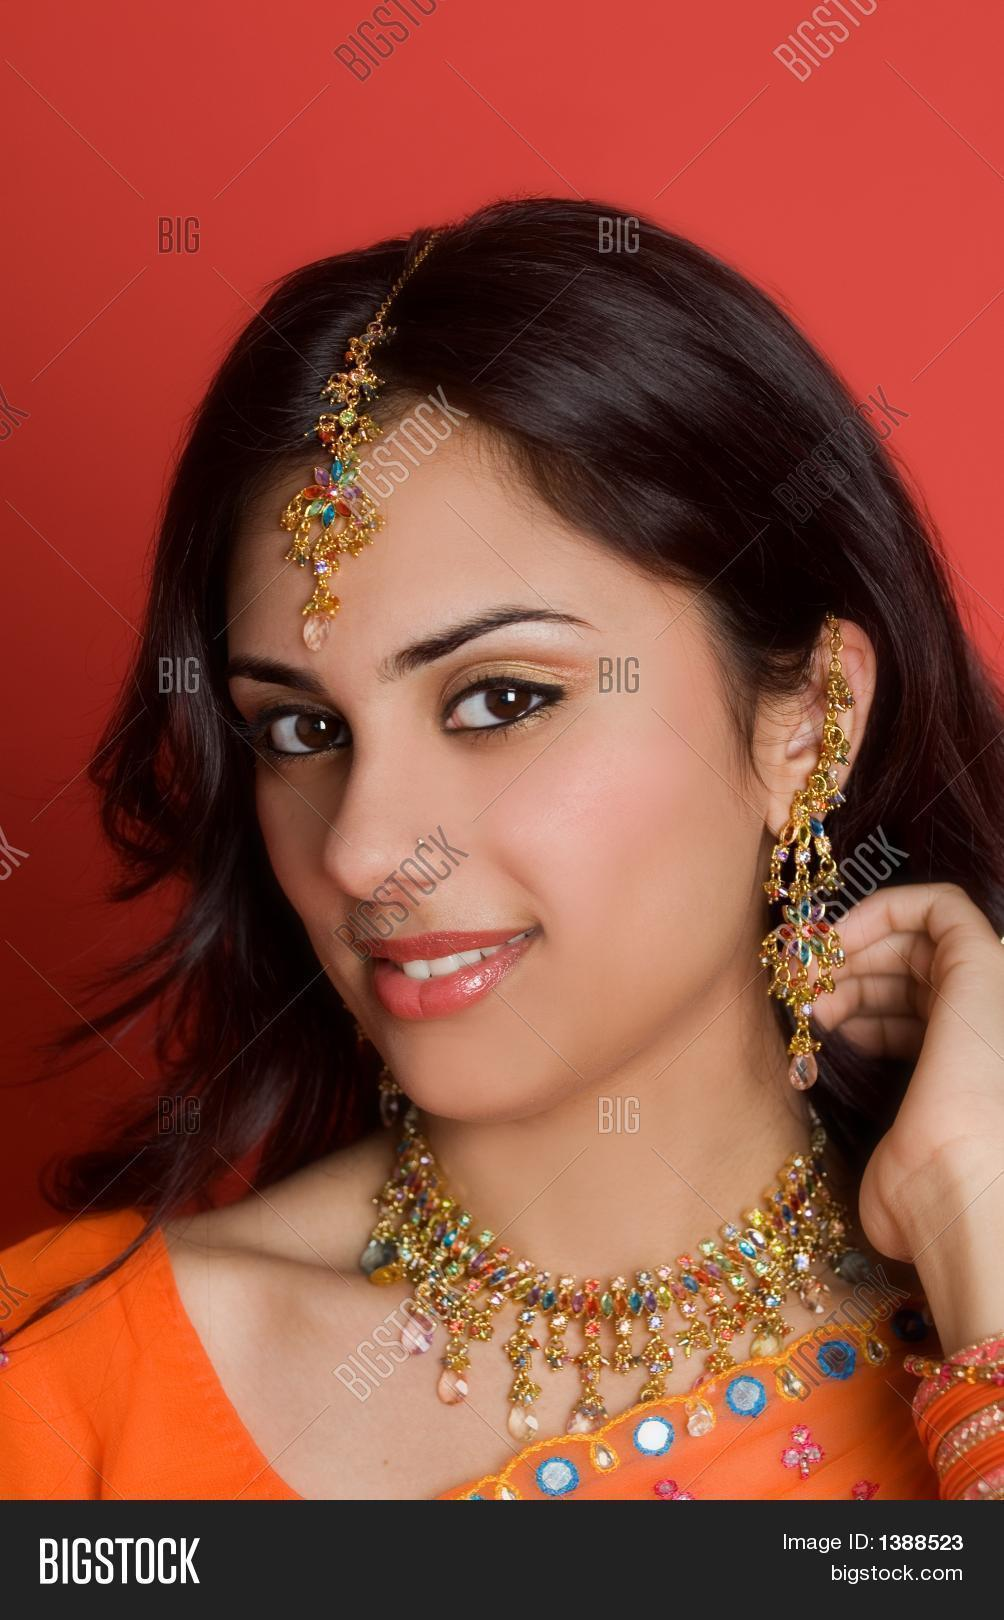 hindu single women in woodgate Woodgate's best 100% free online dating site meet loads of available single women in woodgate with mingle2's woodgate dating services find a girlfriend or lover in woodgate, or just have fun flirting online with woodgate single girls.